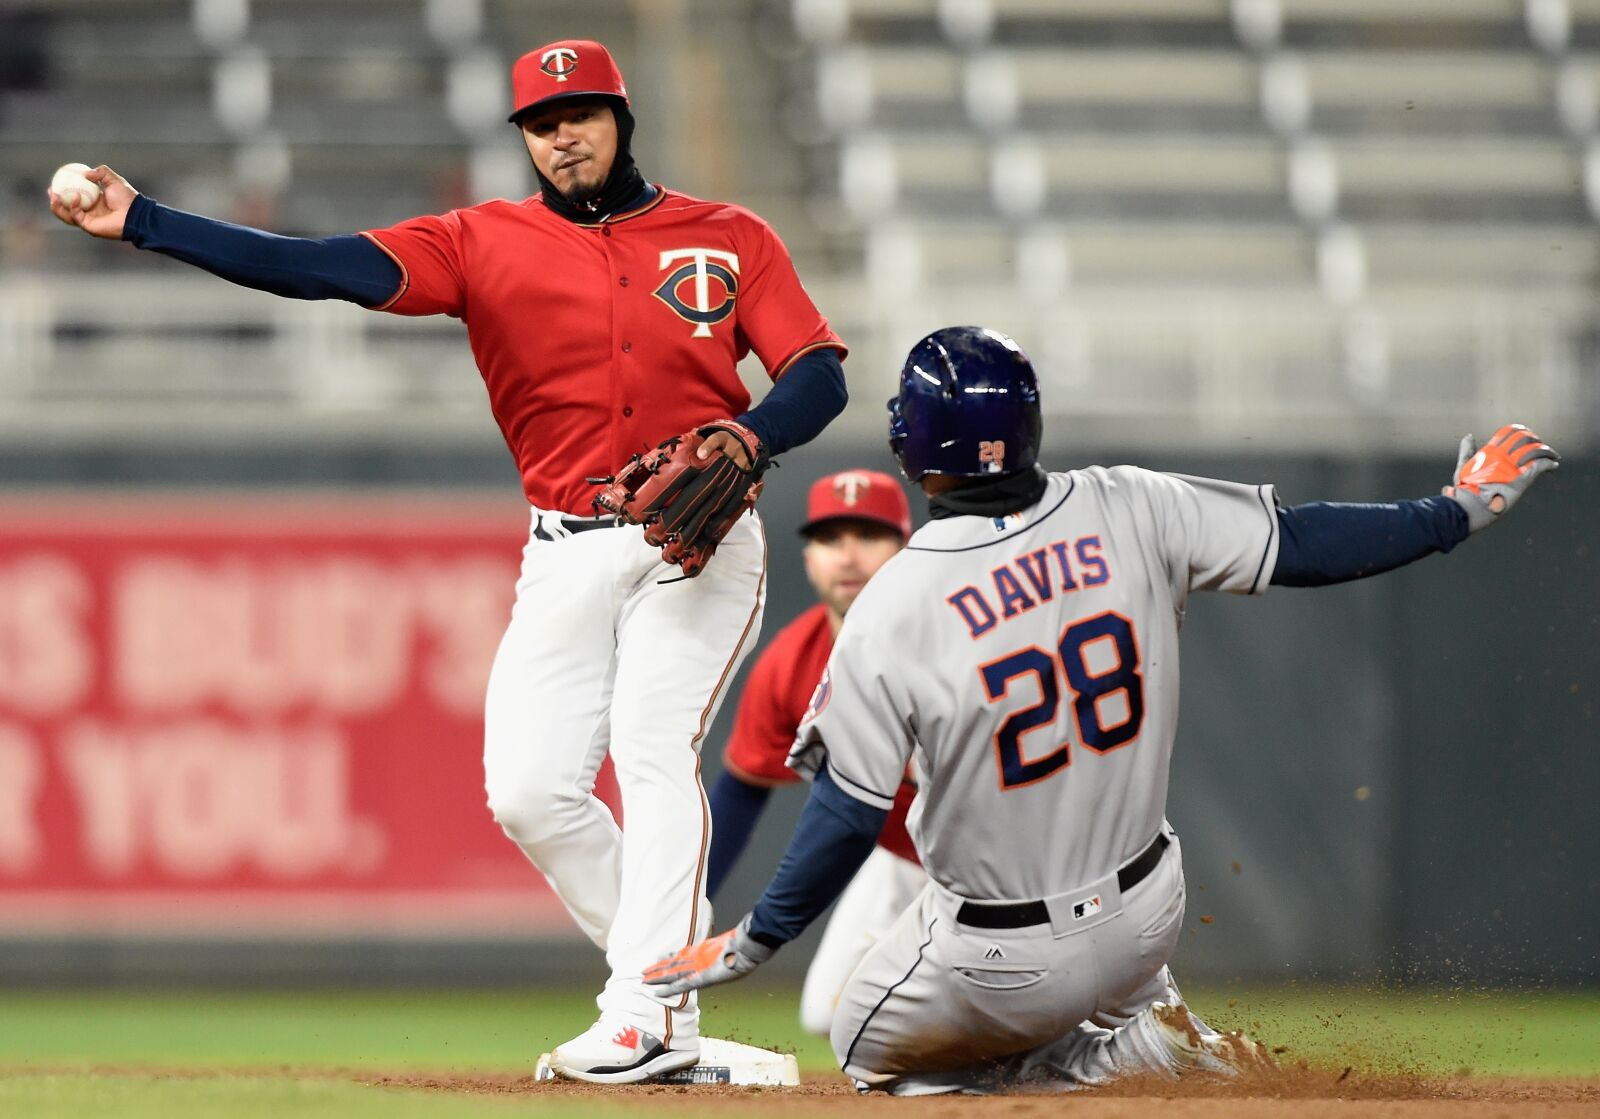 944492552-houston-astros-v-minnesota-twins.jpg